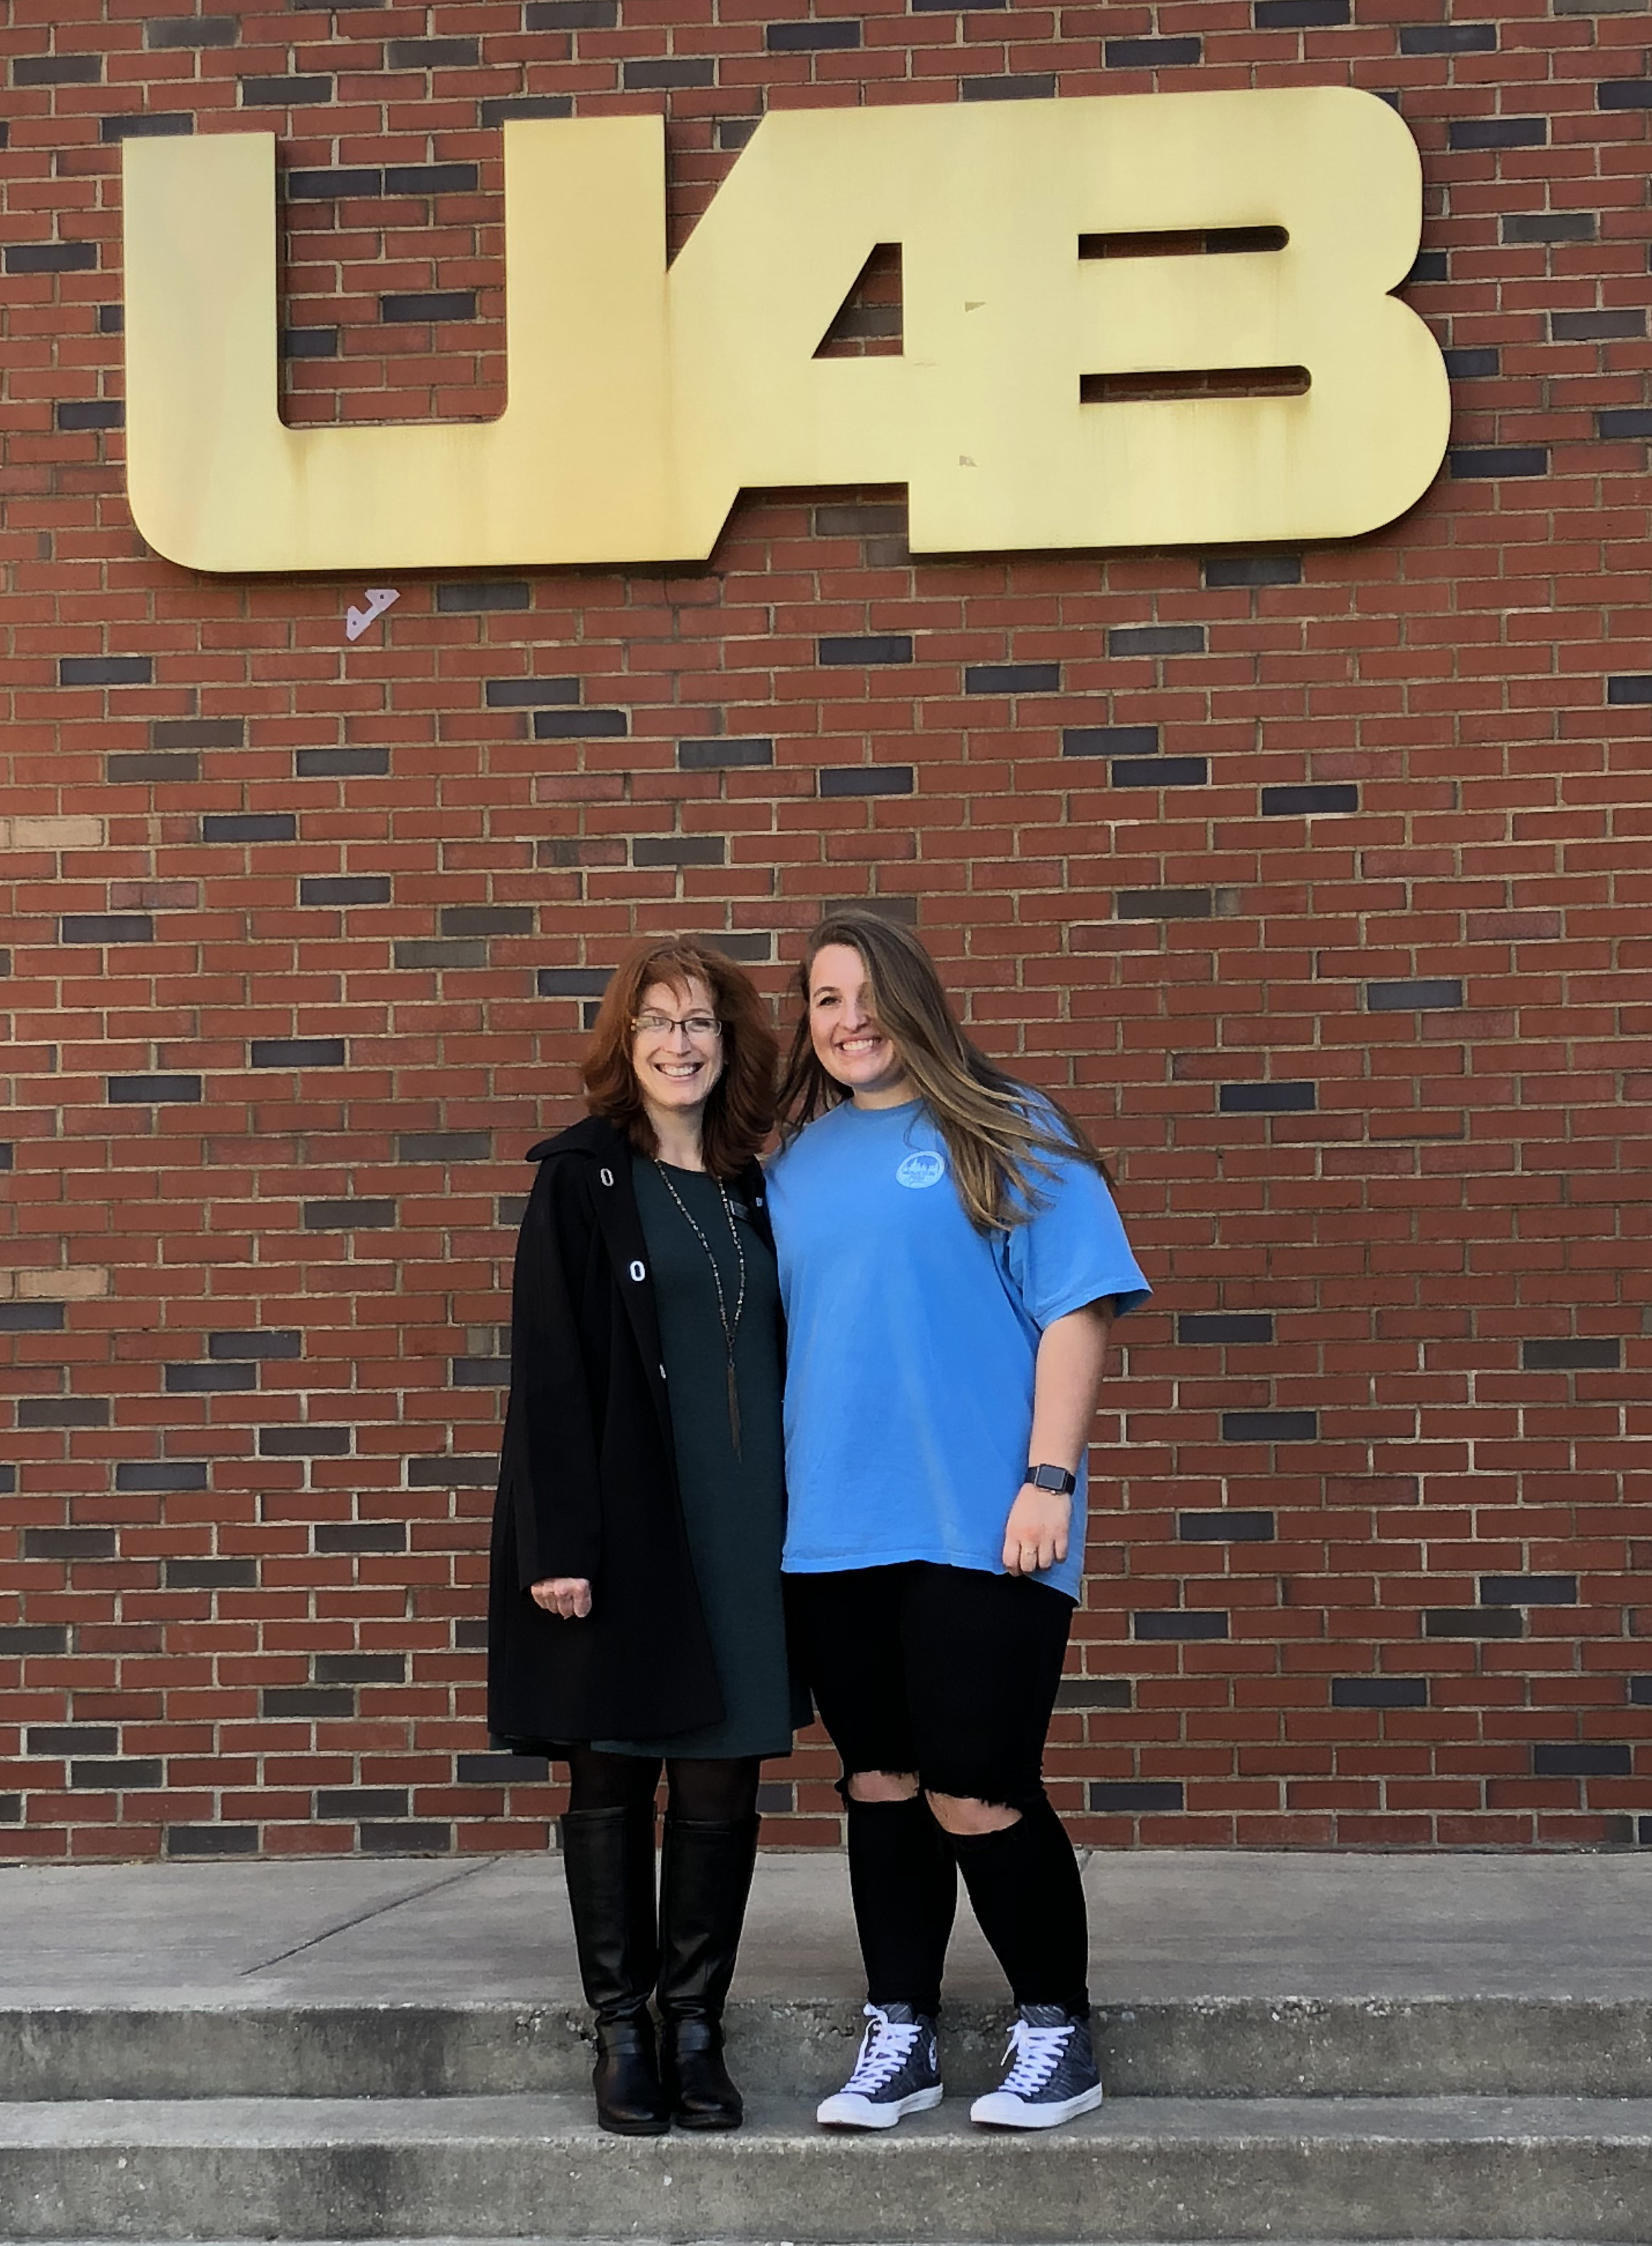 WCF's Holly Trawick and Taylor Rowe during a college visit. Taylor is continuing her education at UAB for Physical Therapy.